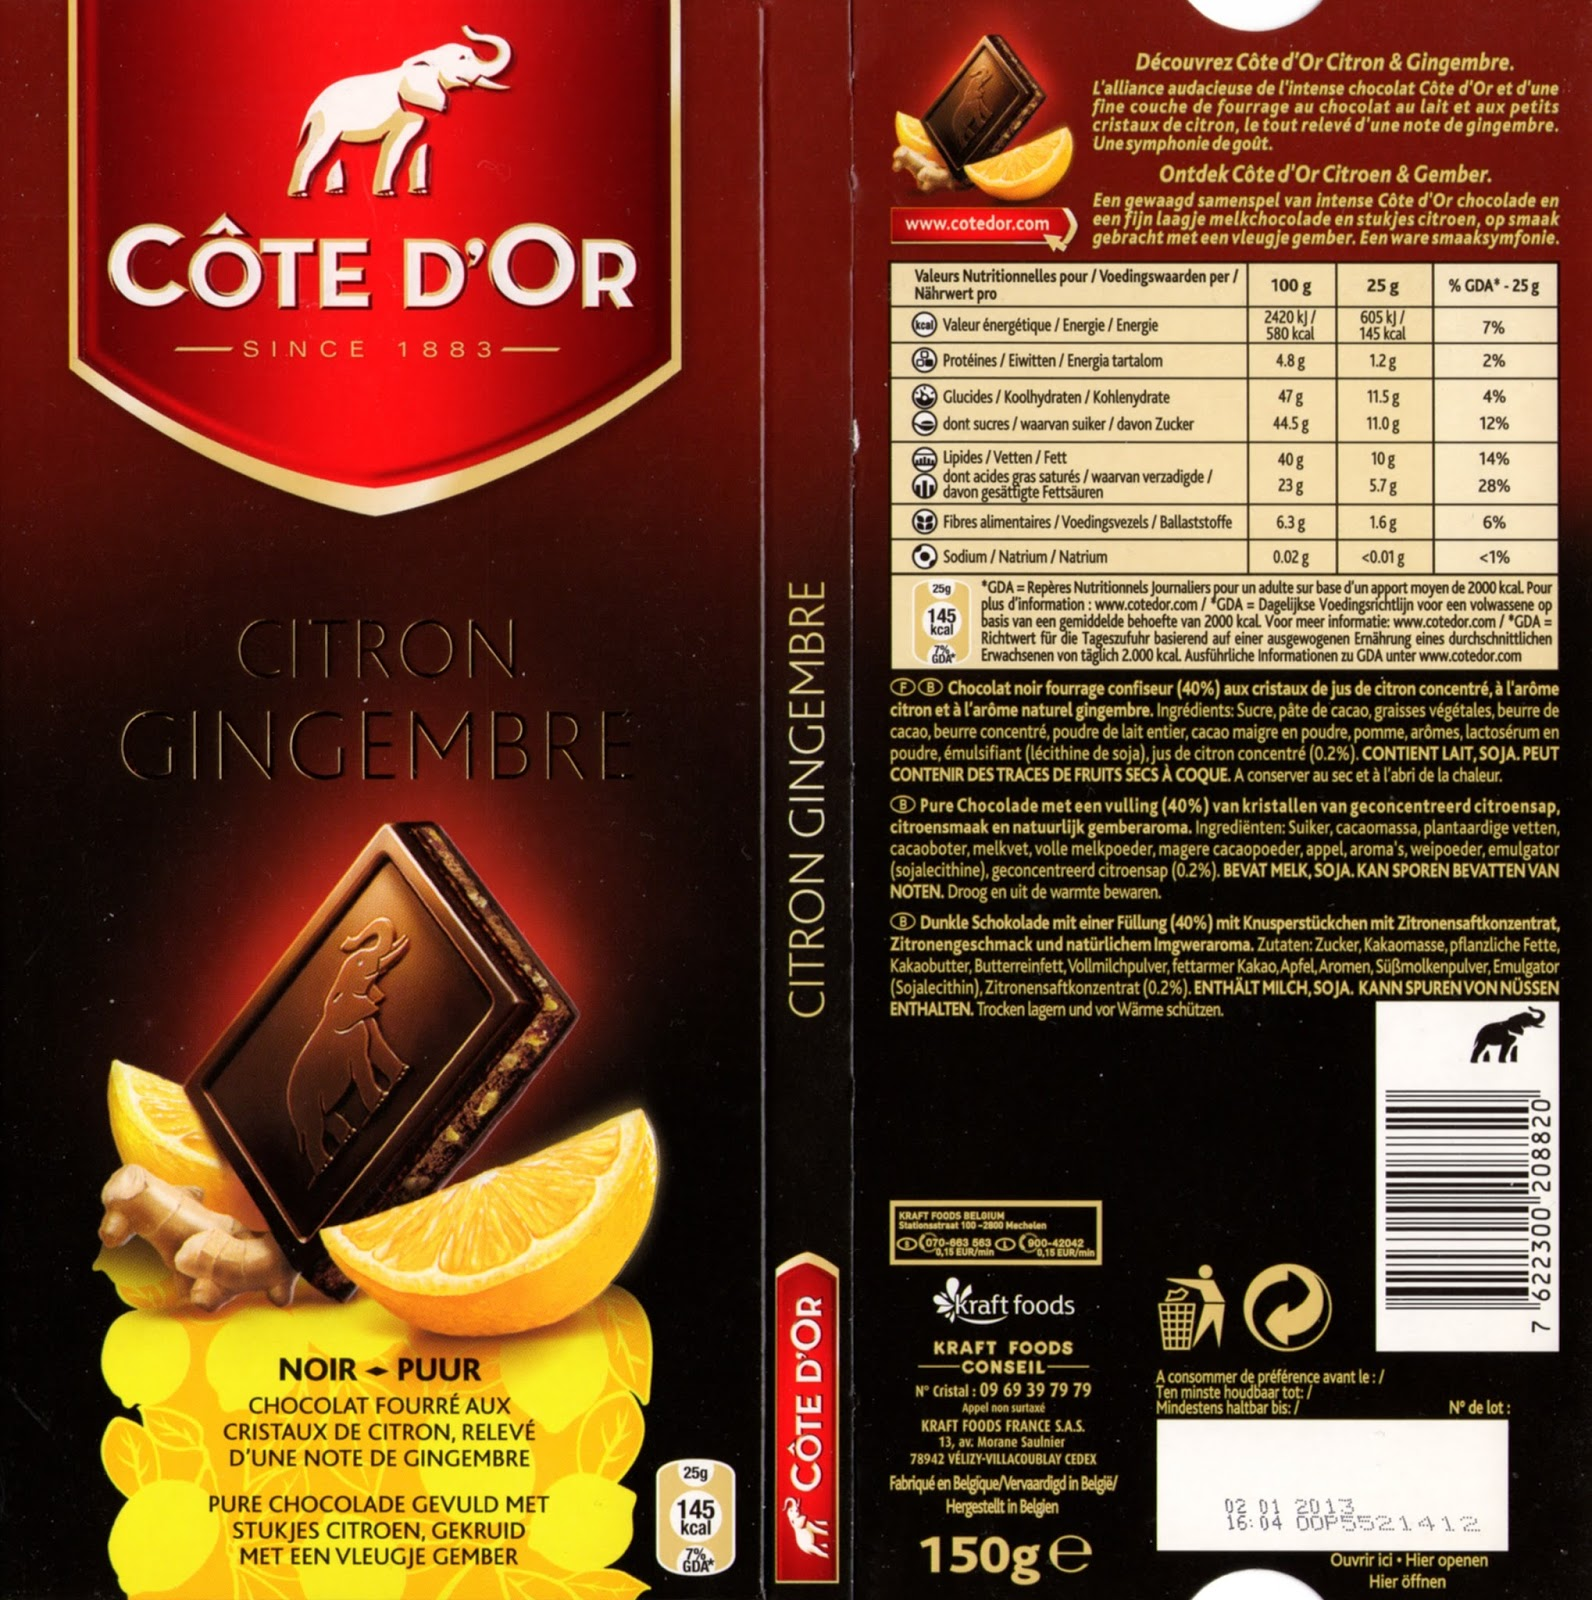 tablette de chocolat noir fourré côte d'or citron gingembre